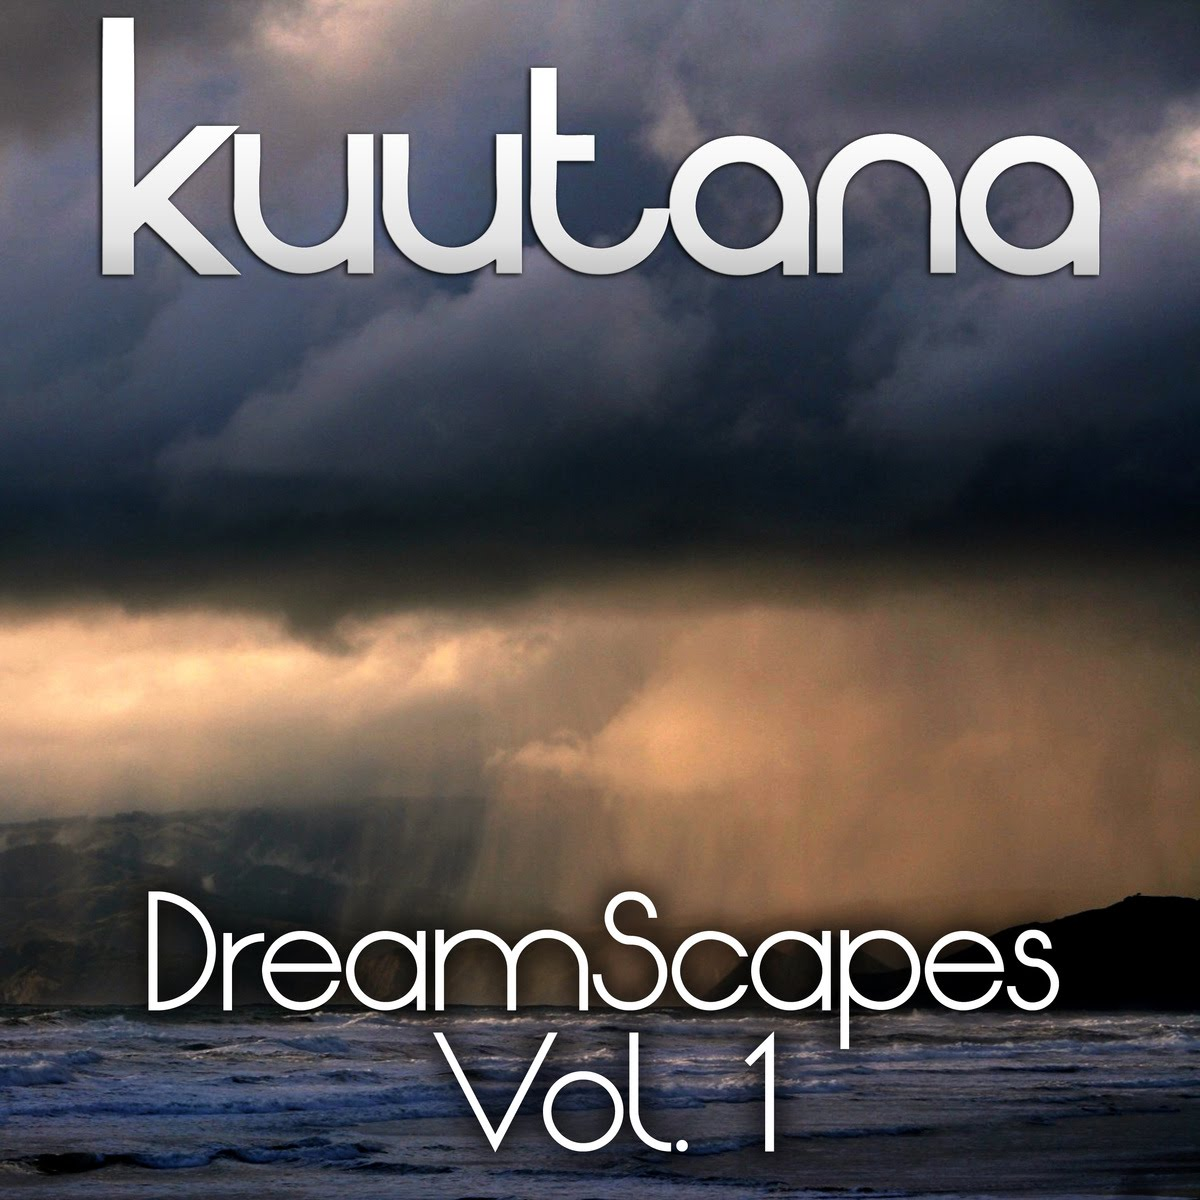 https://kuutana.bandcamp.com/album/dreamscapes-vol-1